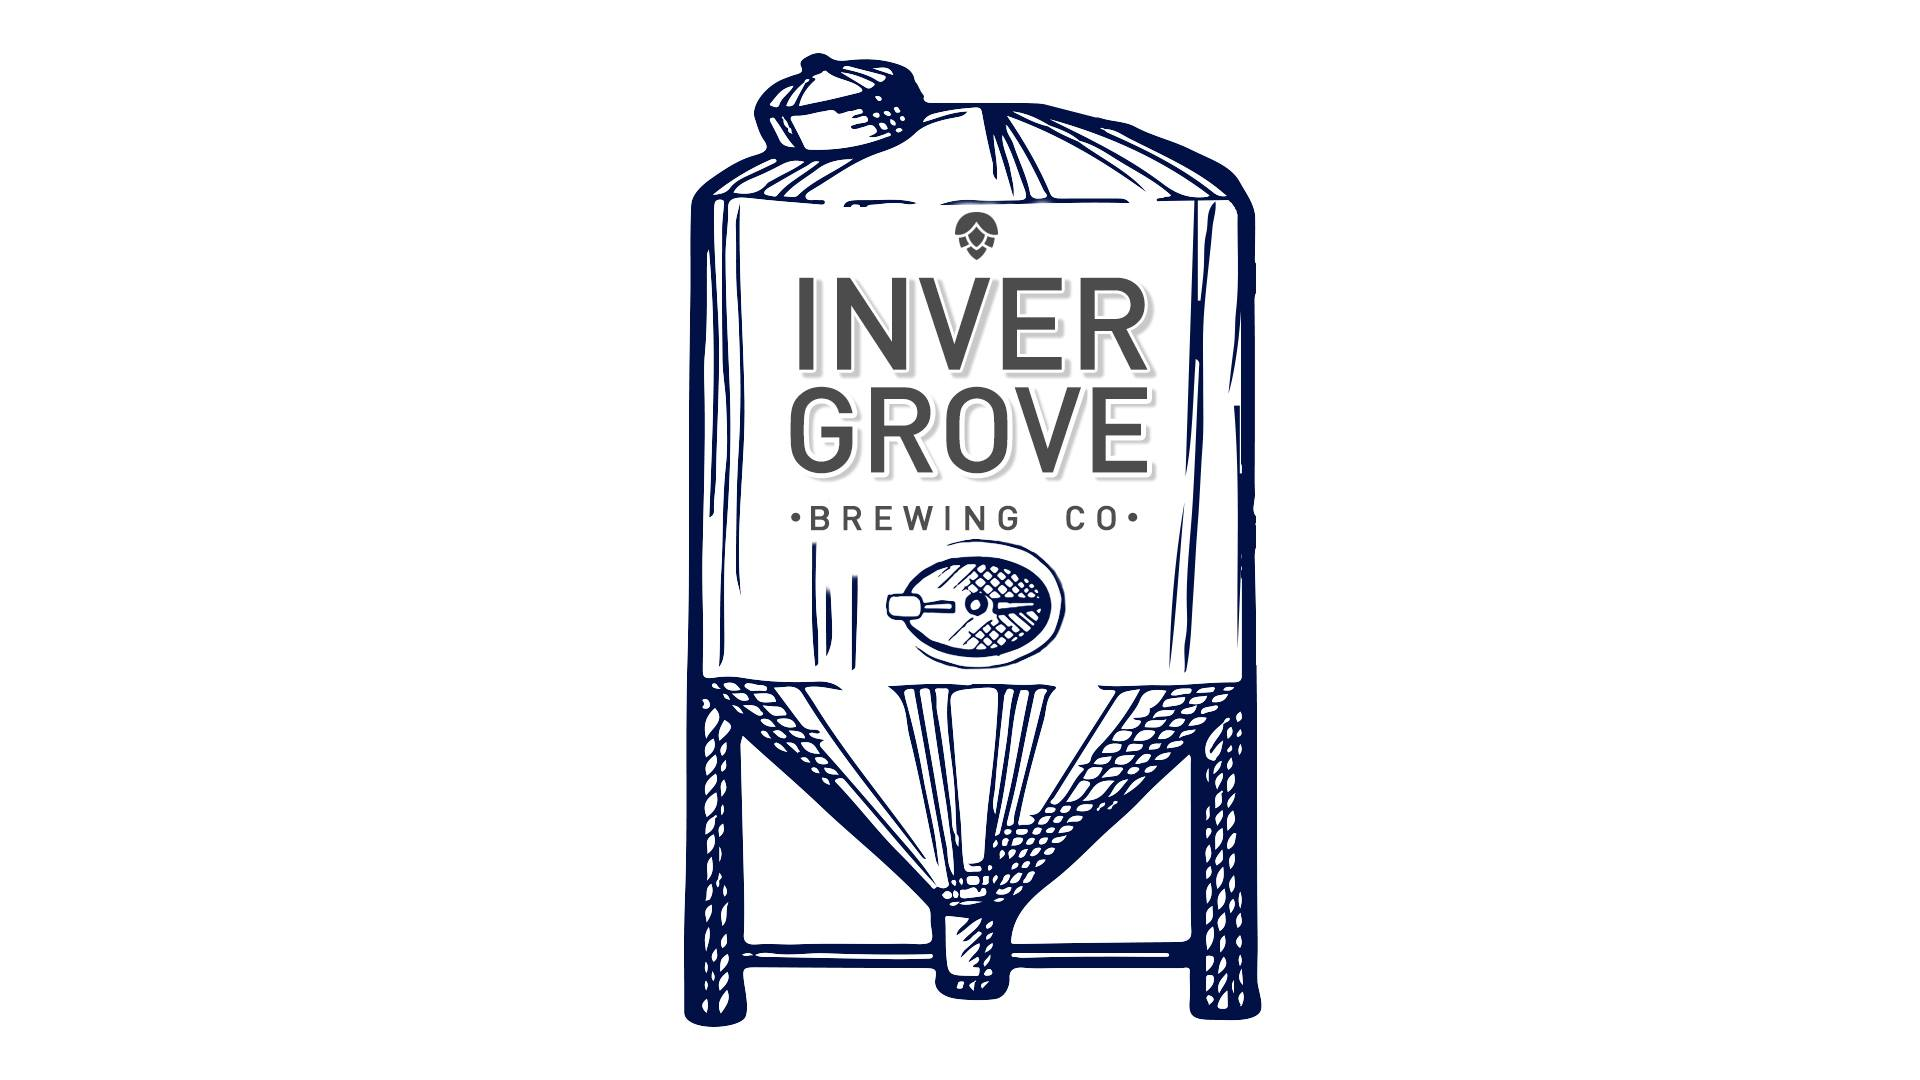 Inver Grove Brewery